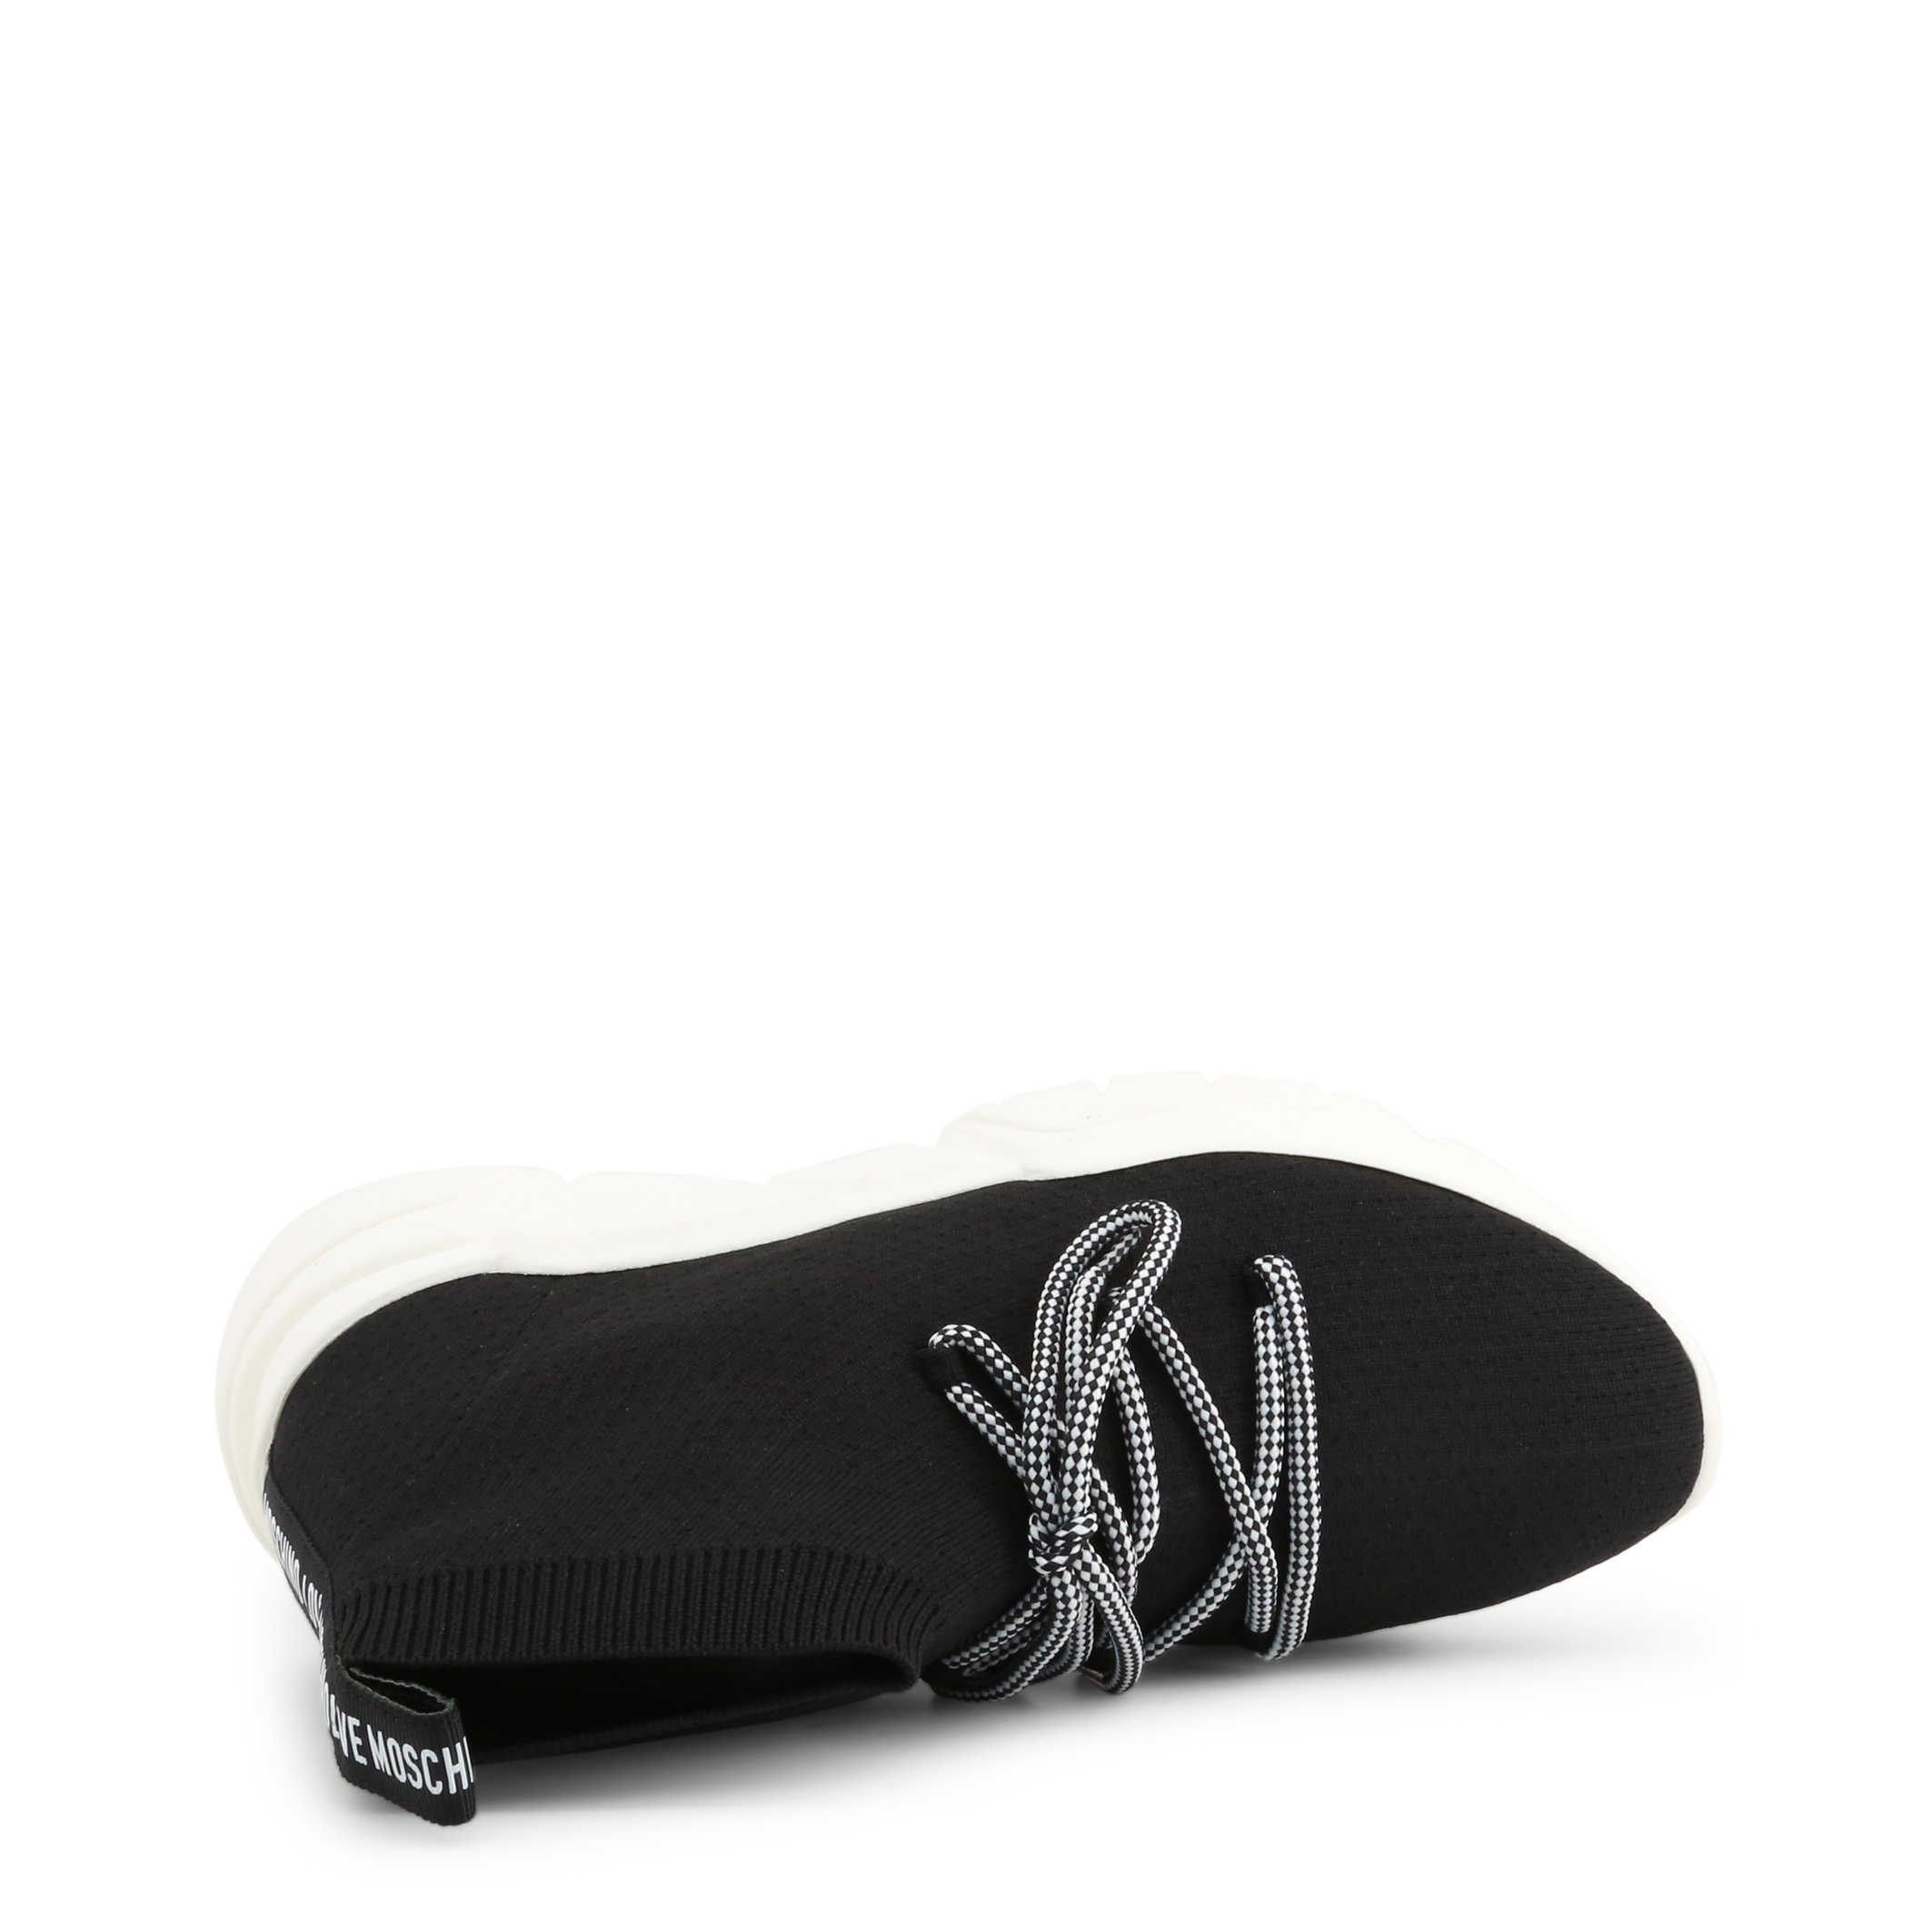 Baskets / Sneakers  Love moschino JA15143G1BIQ_0000 black